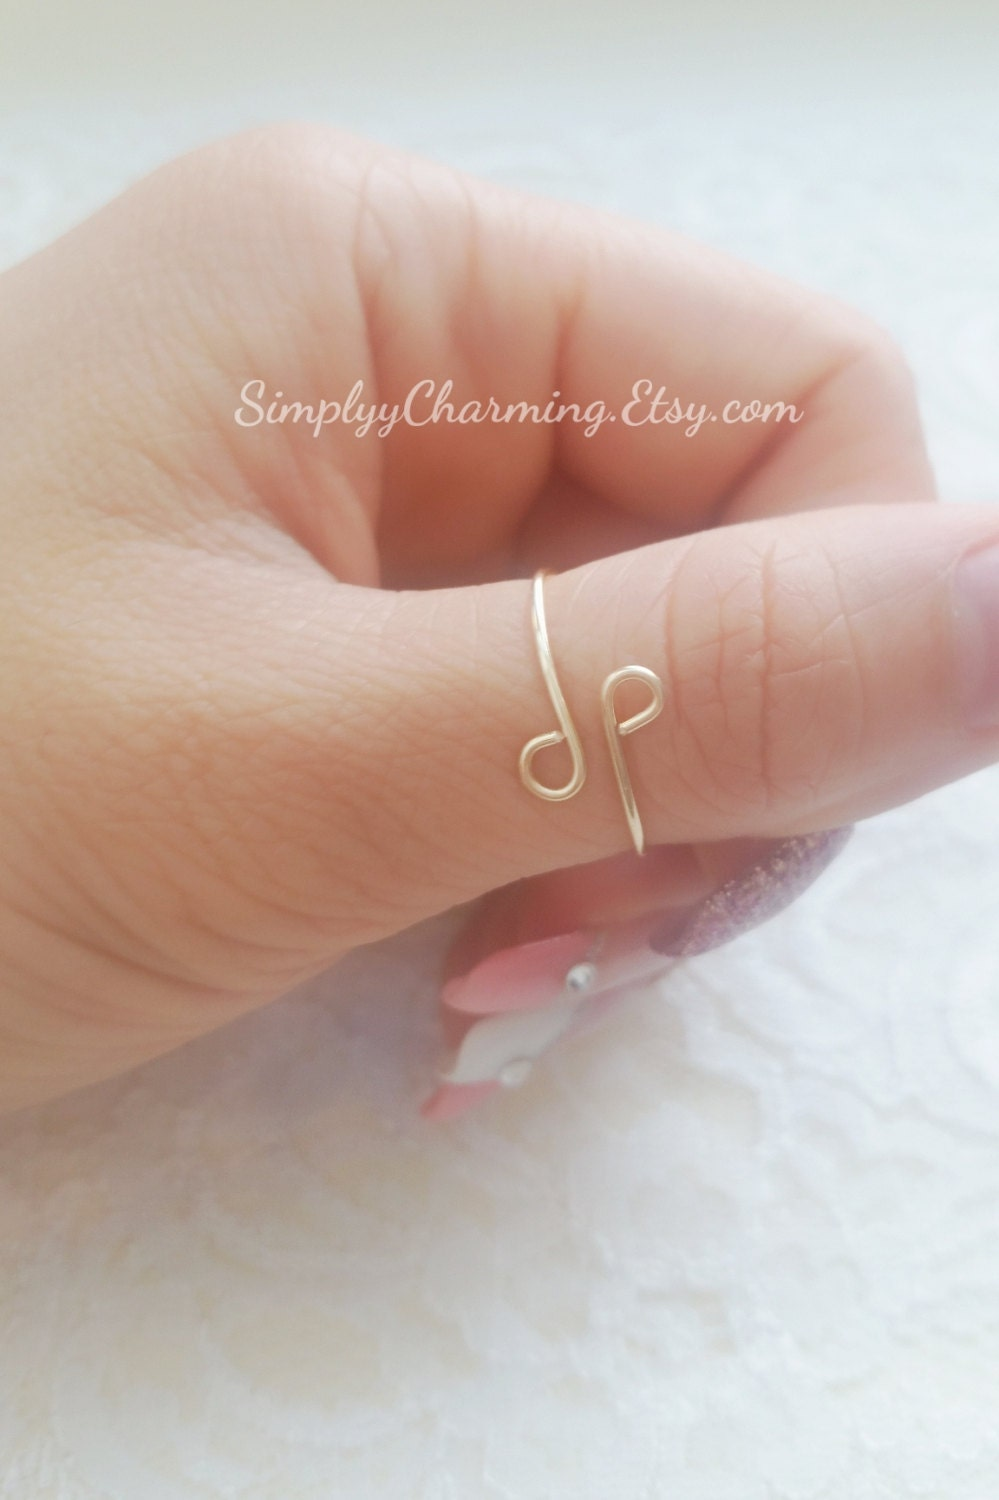 swirl thumb ring unique knuckle rings midi adjustable ring